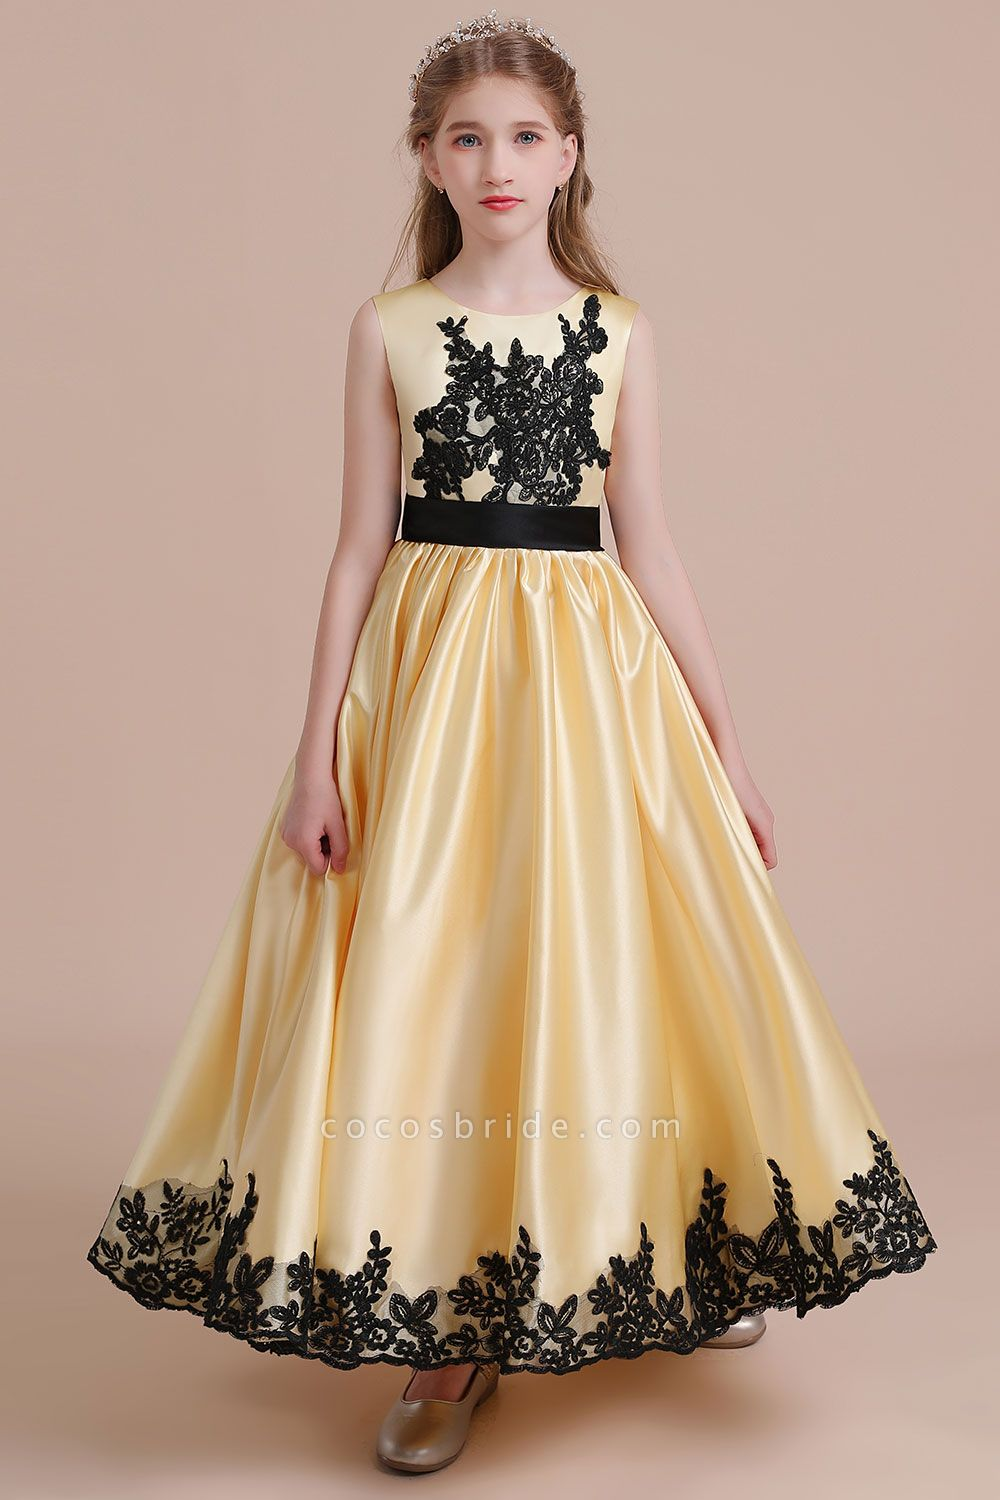 Chic Bow Appliques Satin A-line Flower Girl Dress